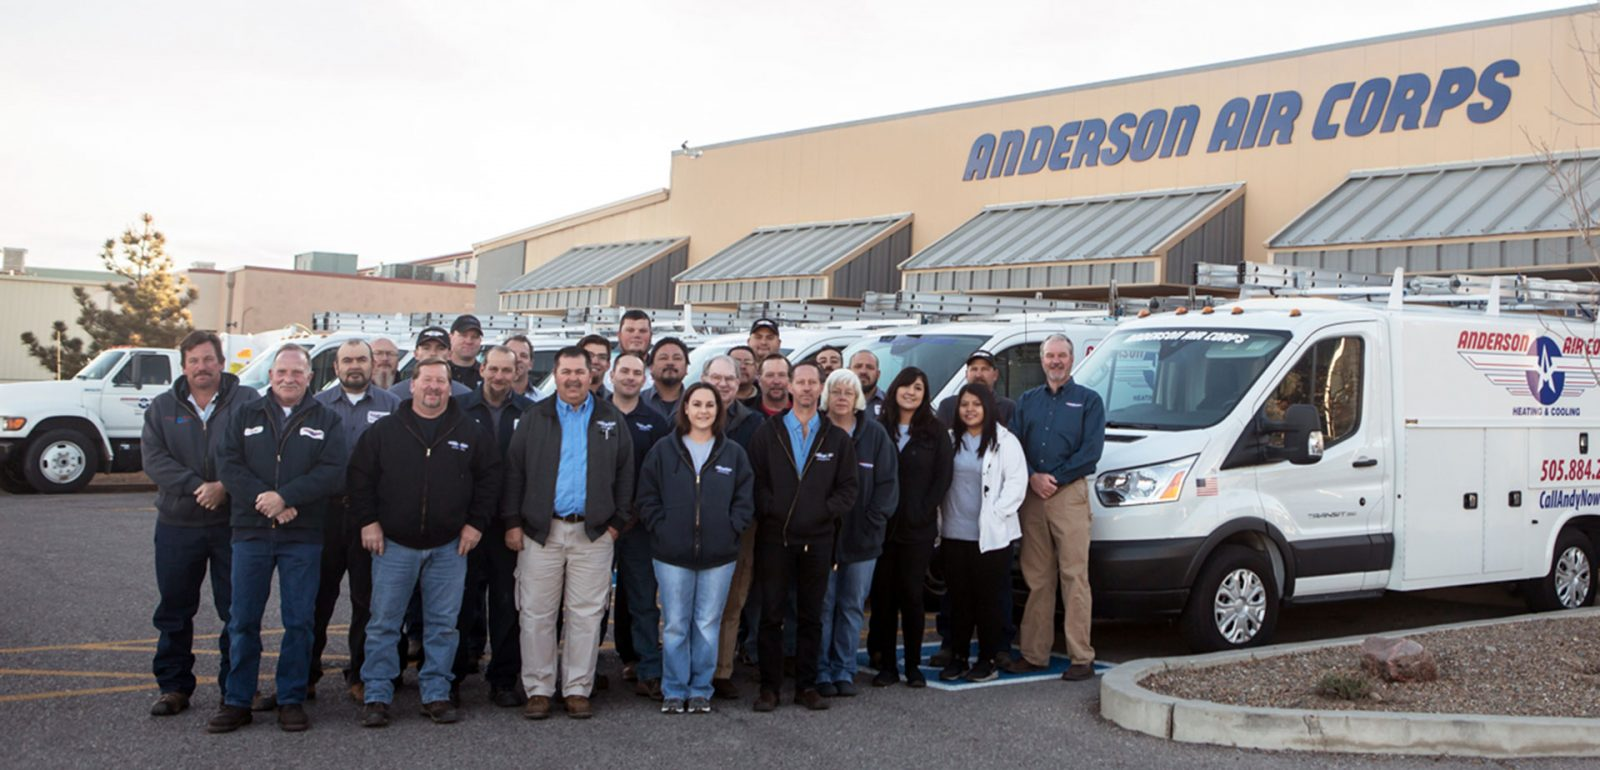 New Mexico's Top Rated Local® HVAC Award Winner: Anderson Air Corps